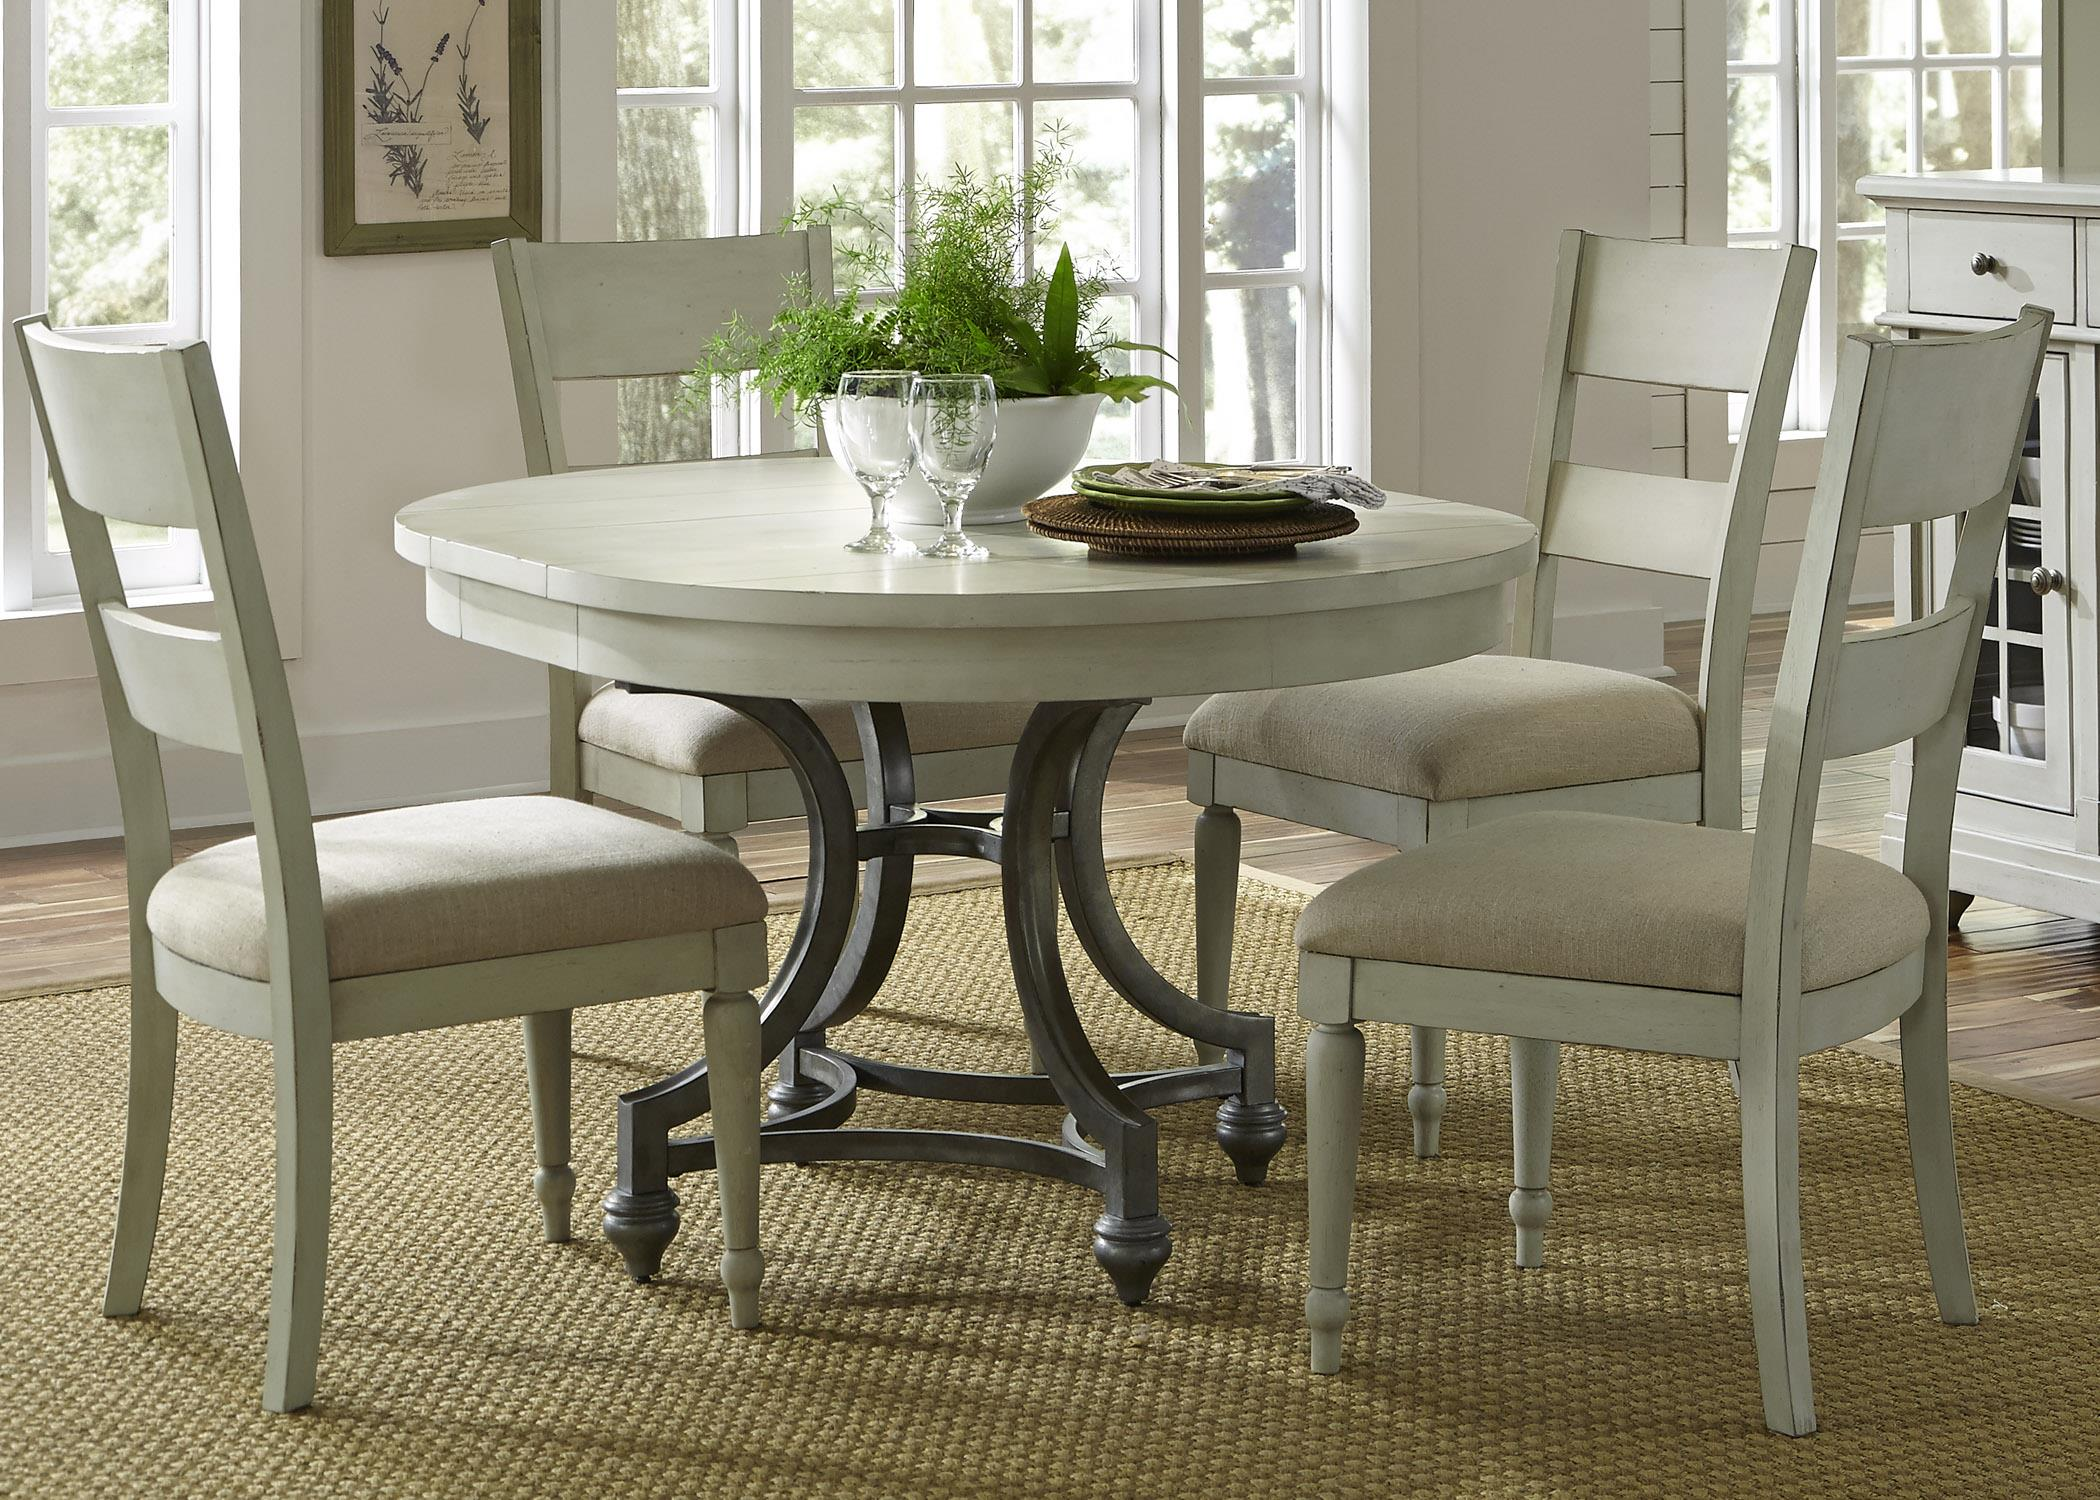 dining room chairs sets of 4 custom made liberty furniture harbor view round table with slat back